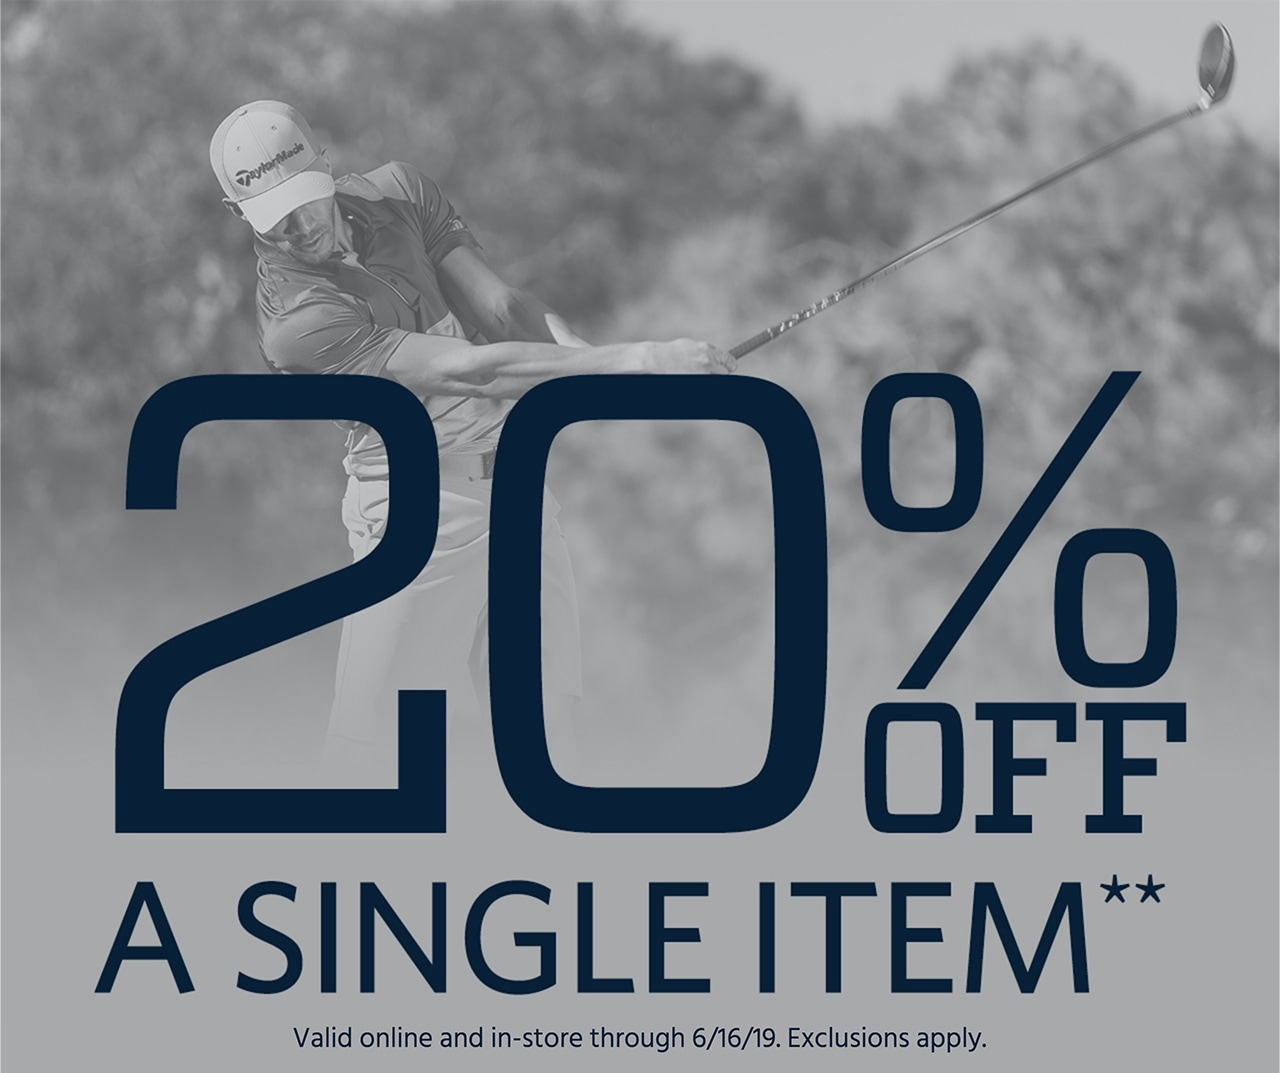 20% Off a Single Item**. Valid online only through 6/16/19. Exclusions apply. If, date is after June 27, 2019 11:59 AM PDT, Sorry! You missed this promotion, but you can still shop this week's deals. Shop now.)